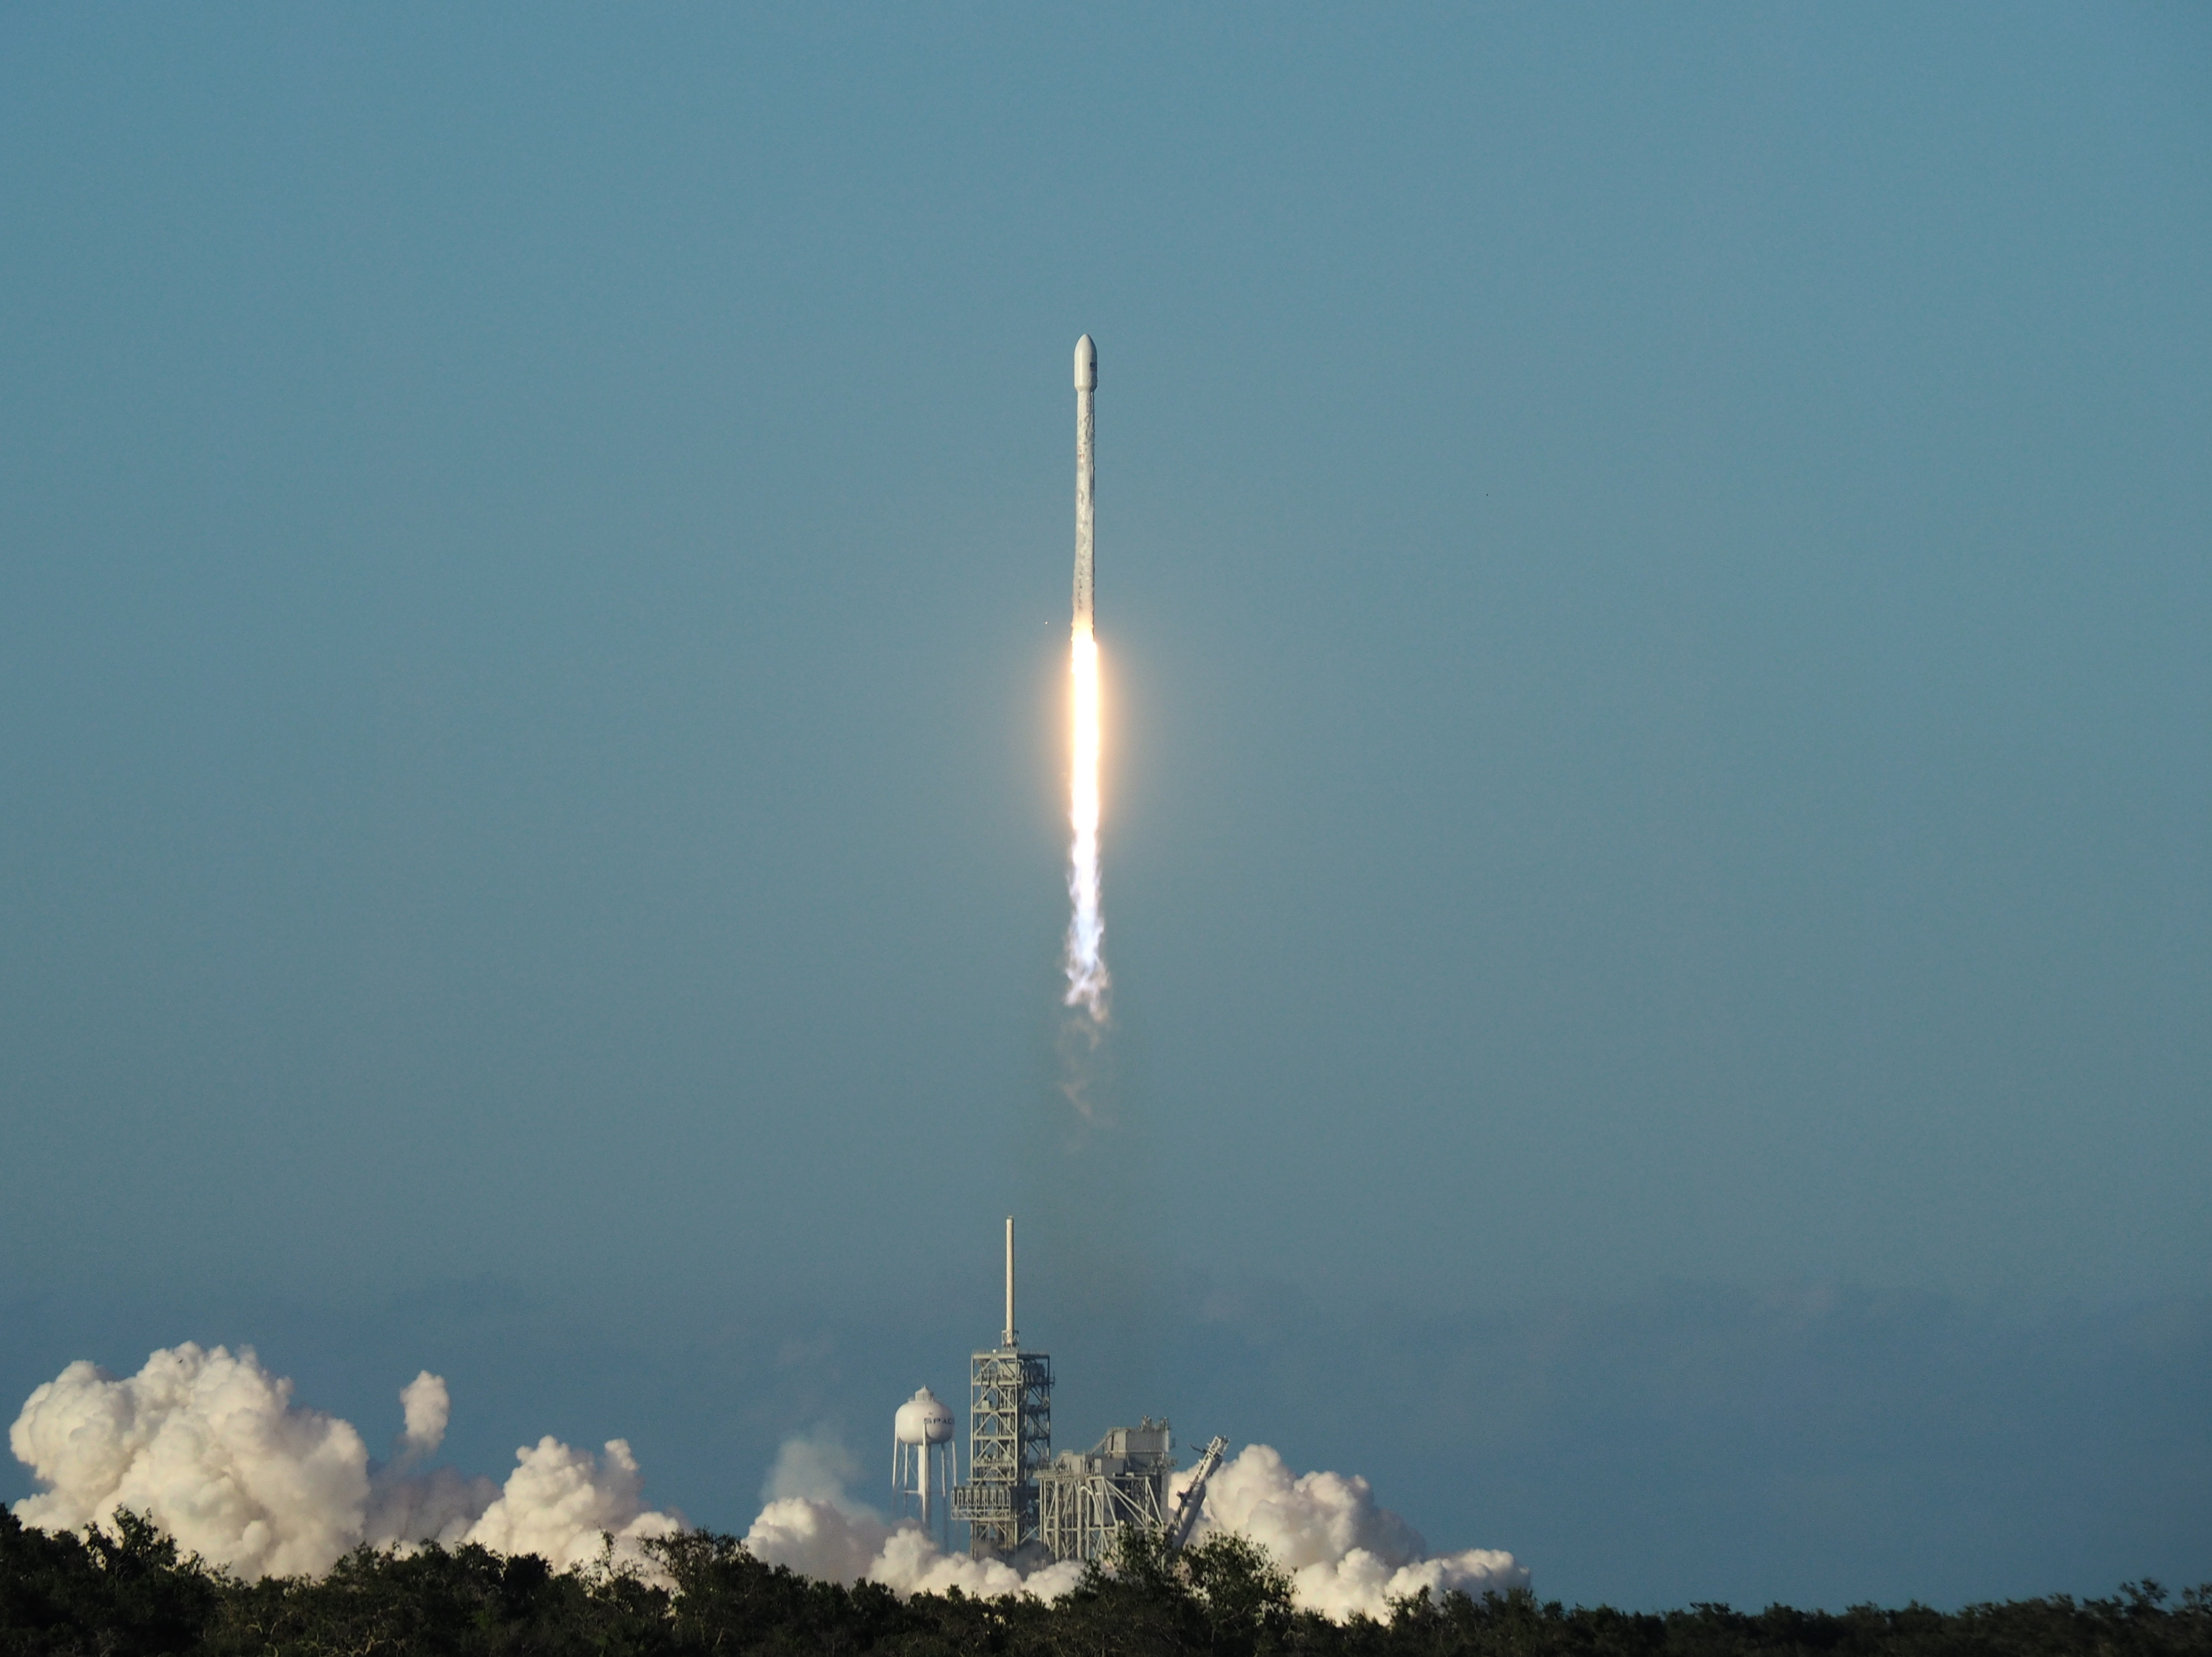 Inmarsat I5F4 launches on a SpaceX Falcon 9